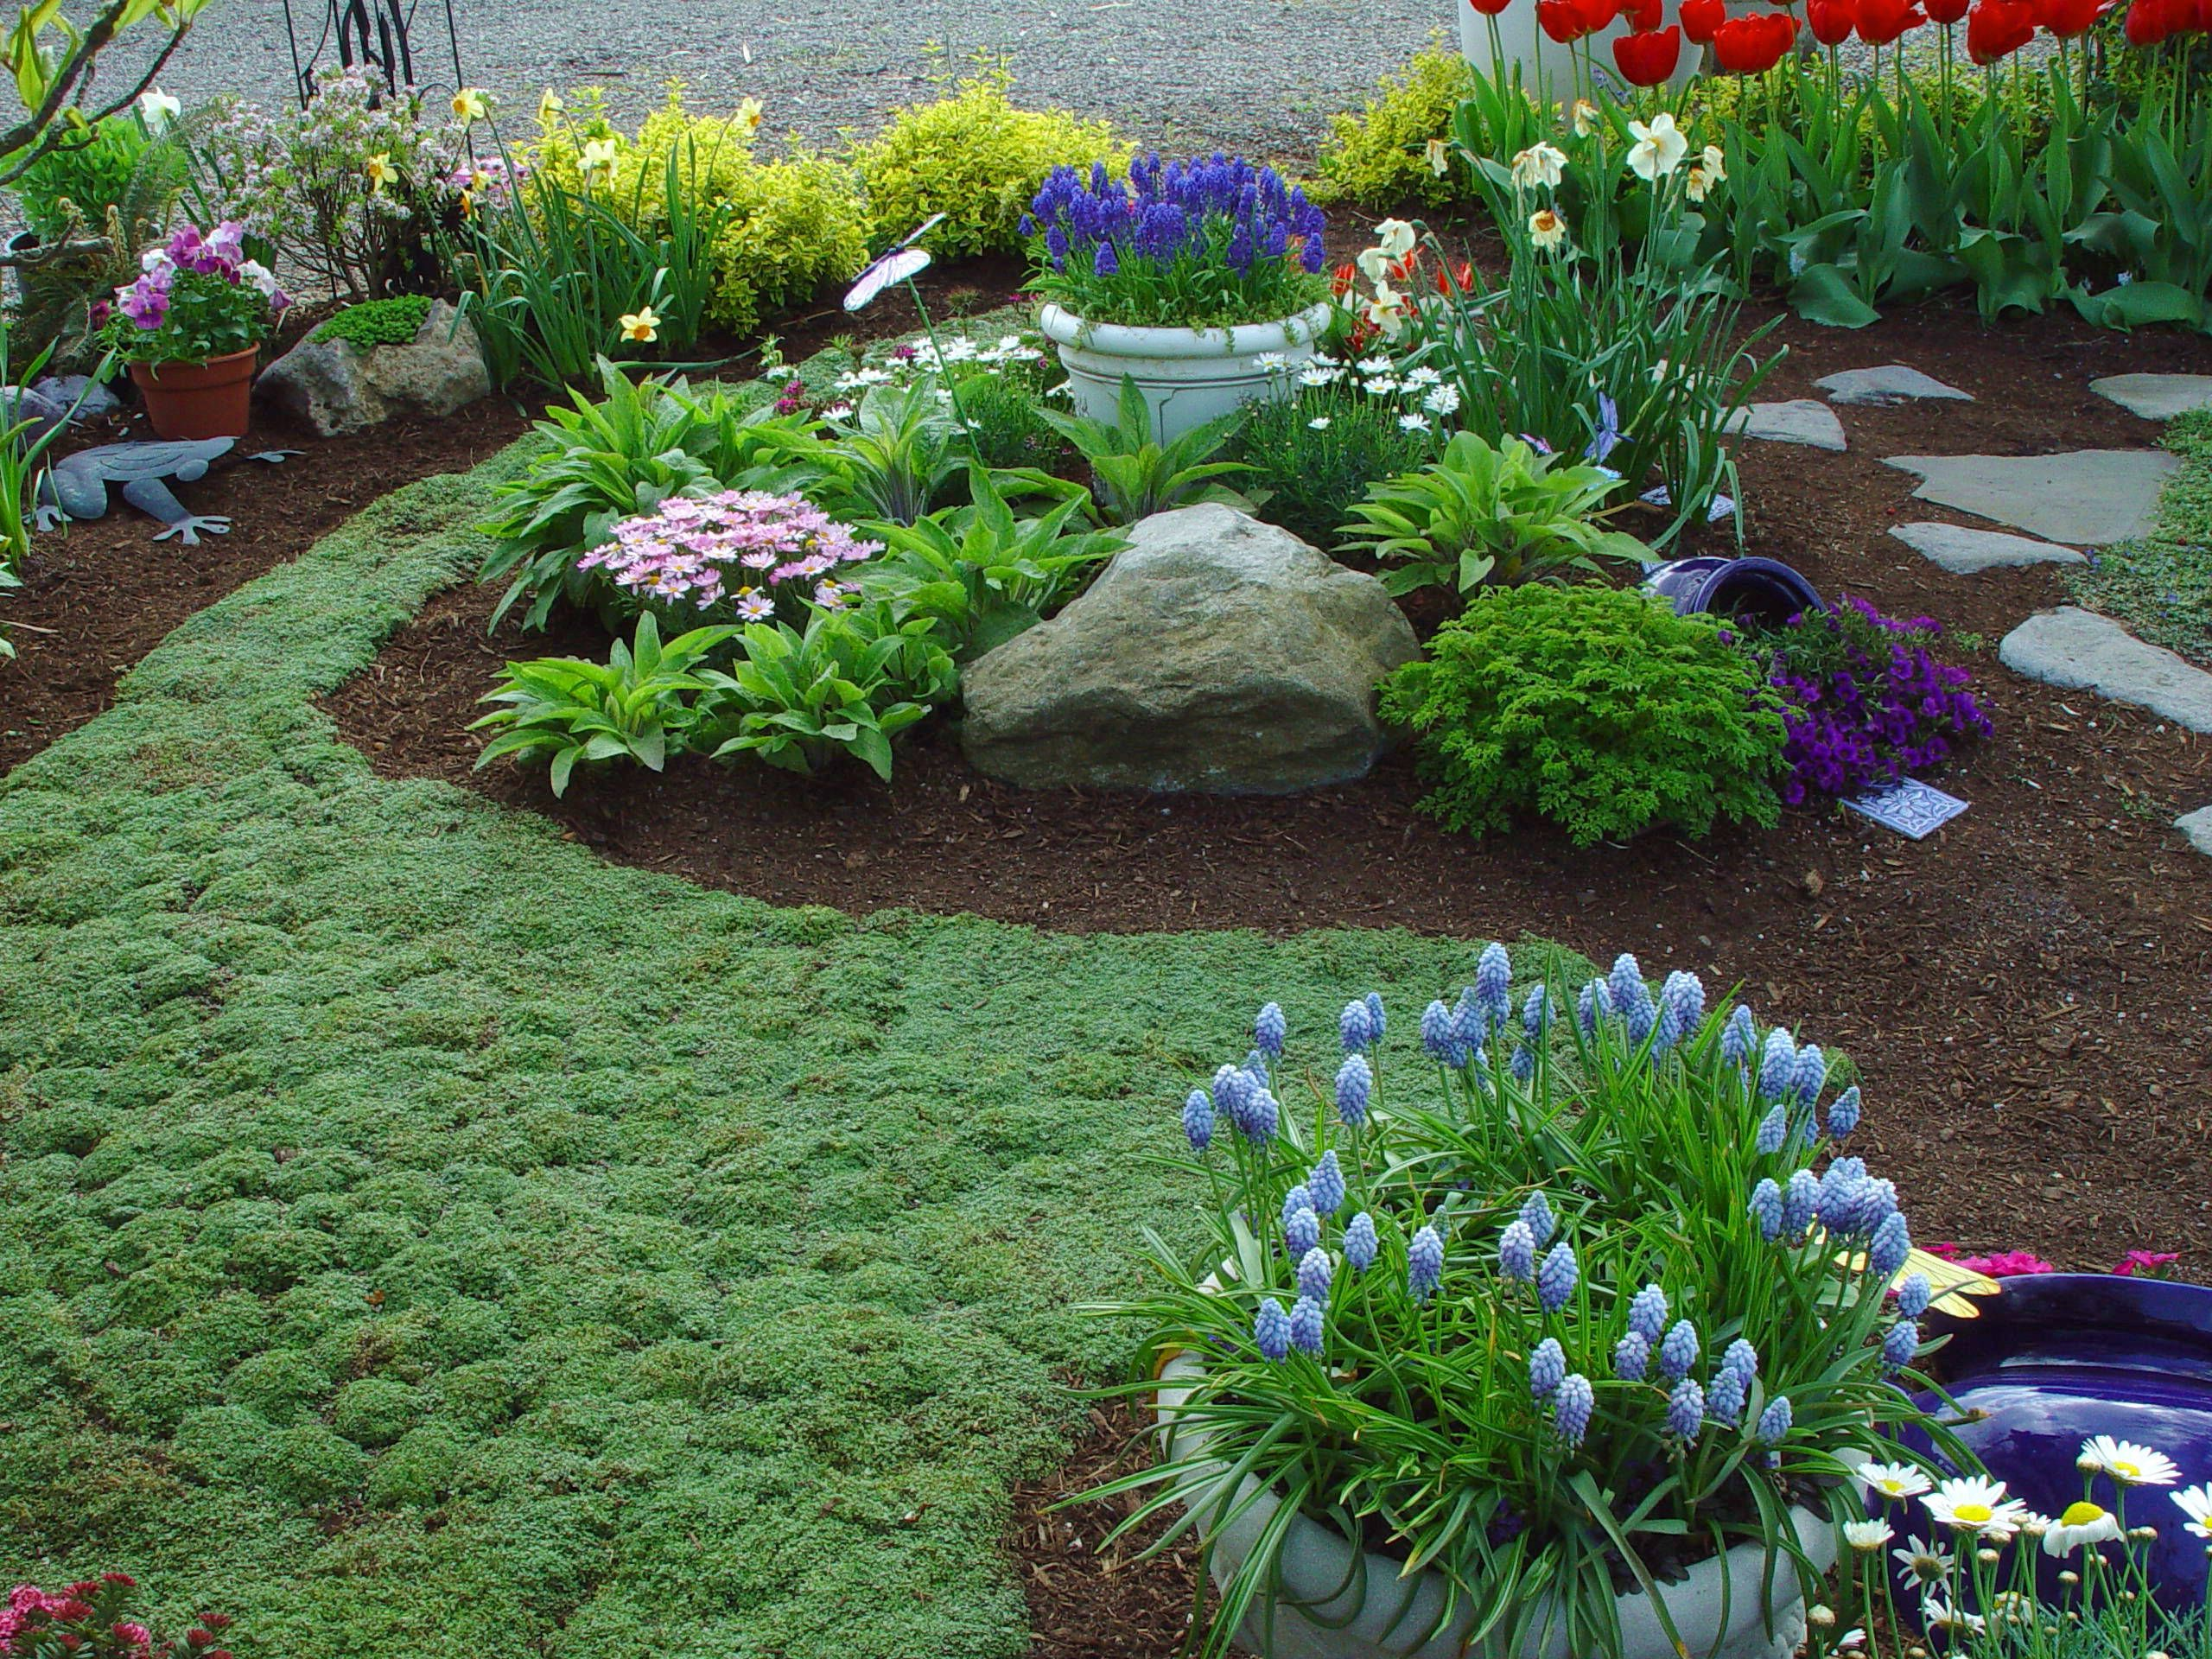 16 Spreading Plants For Paved Areas Lawn Alternatives Front Yard Landscaping Ground Cover Plants